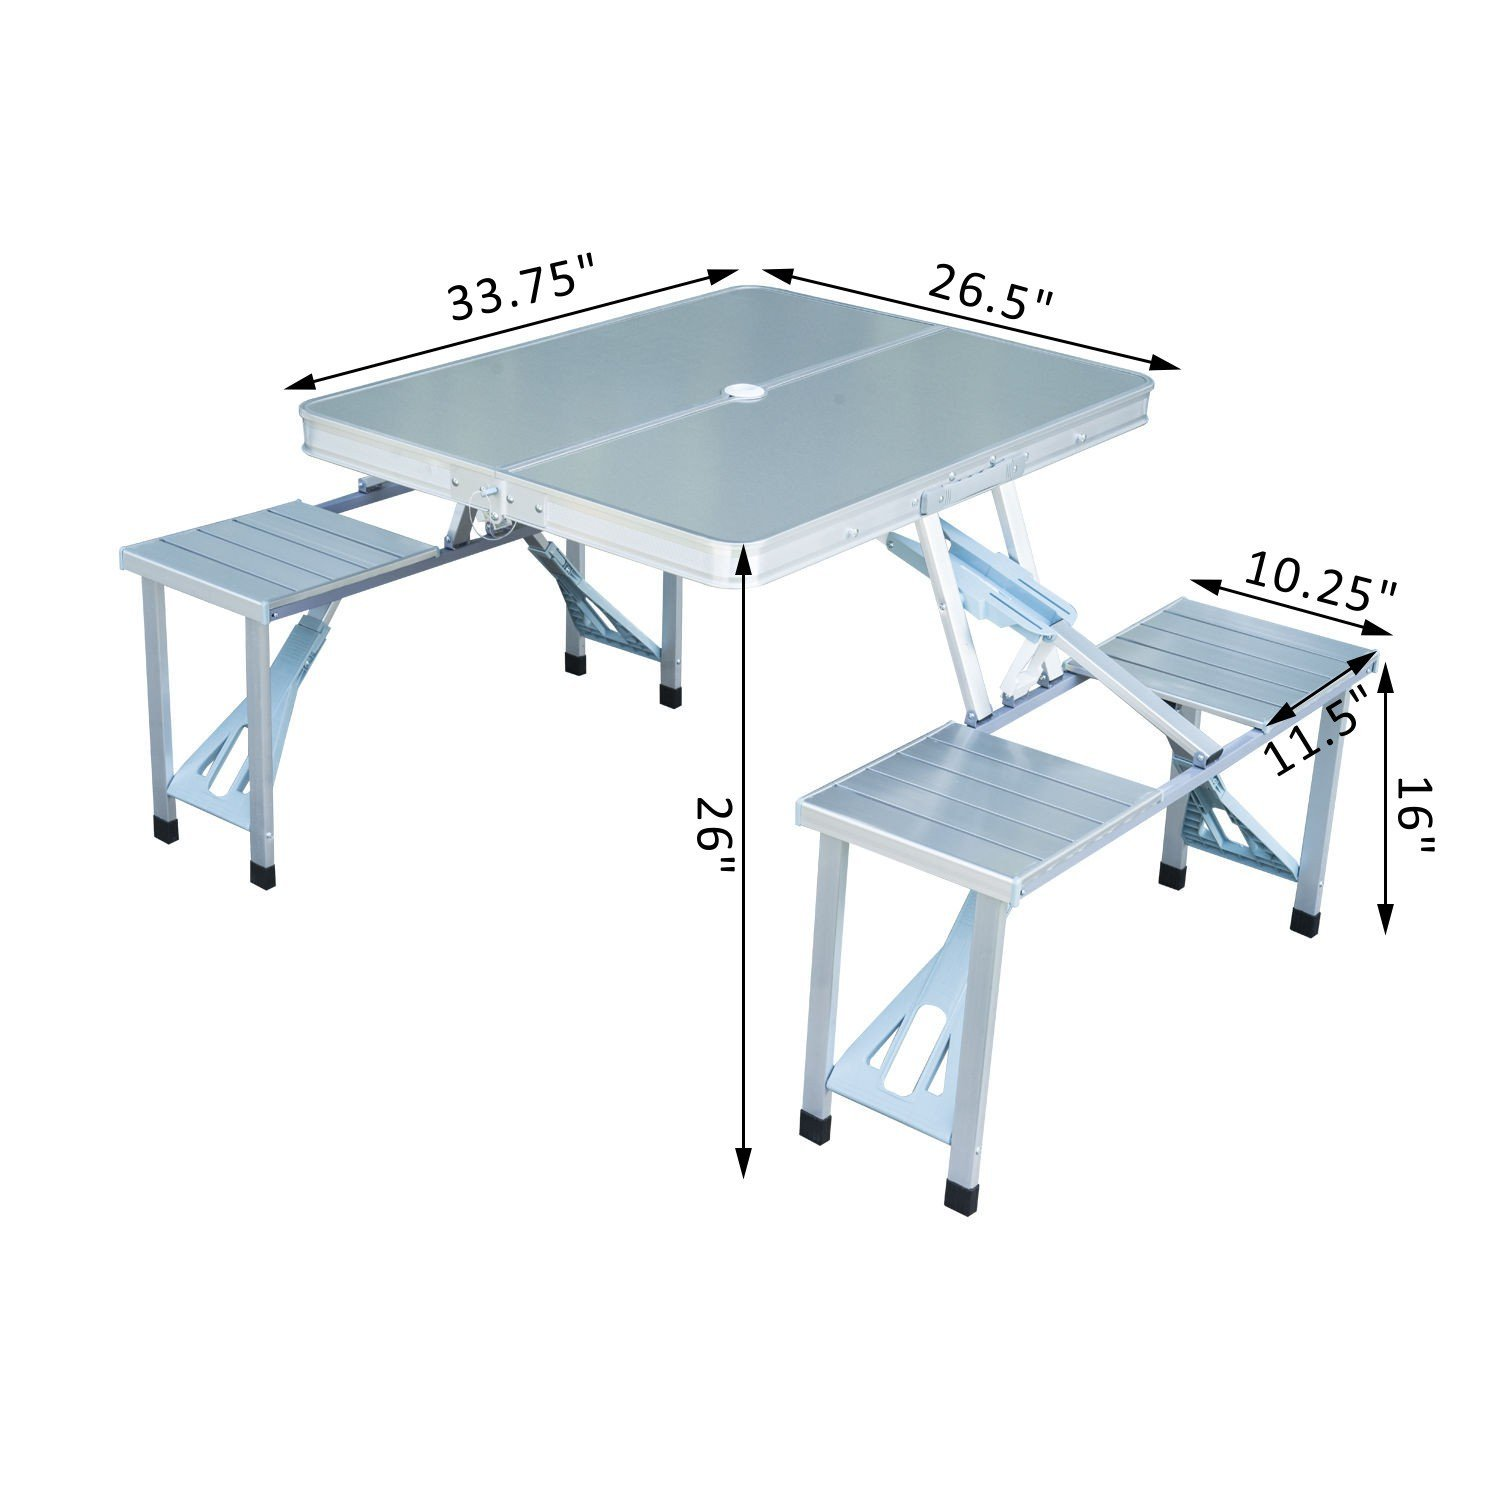 Outdoor Aluminum Portable Folding Camping Picnic Table W/ 4 Seats With Ebook